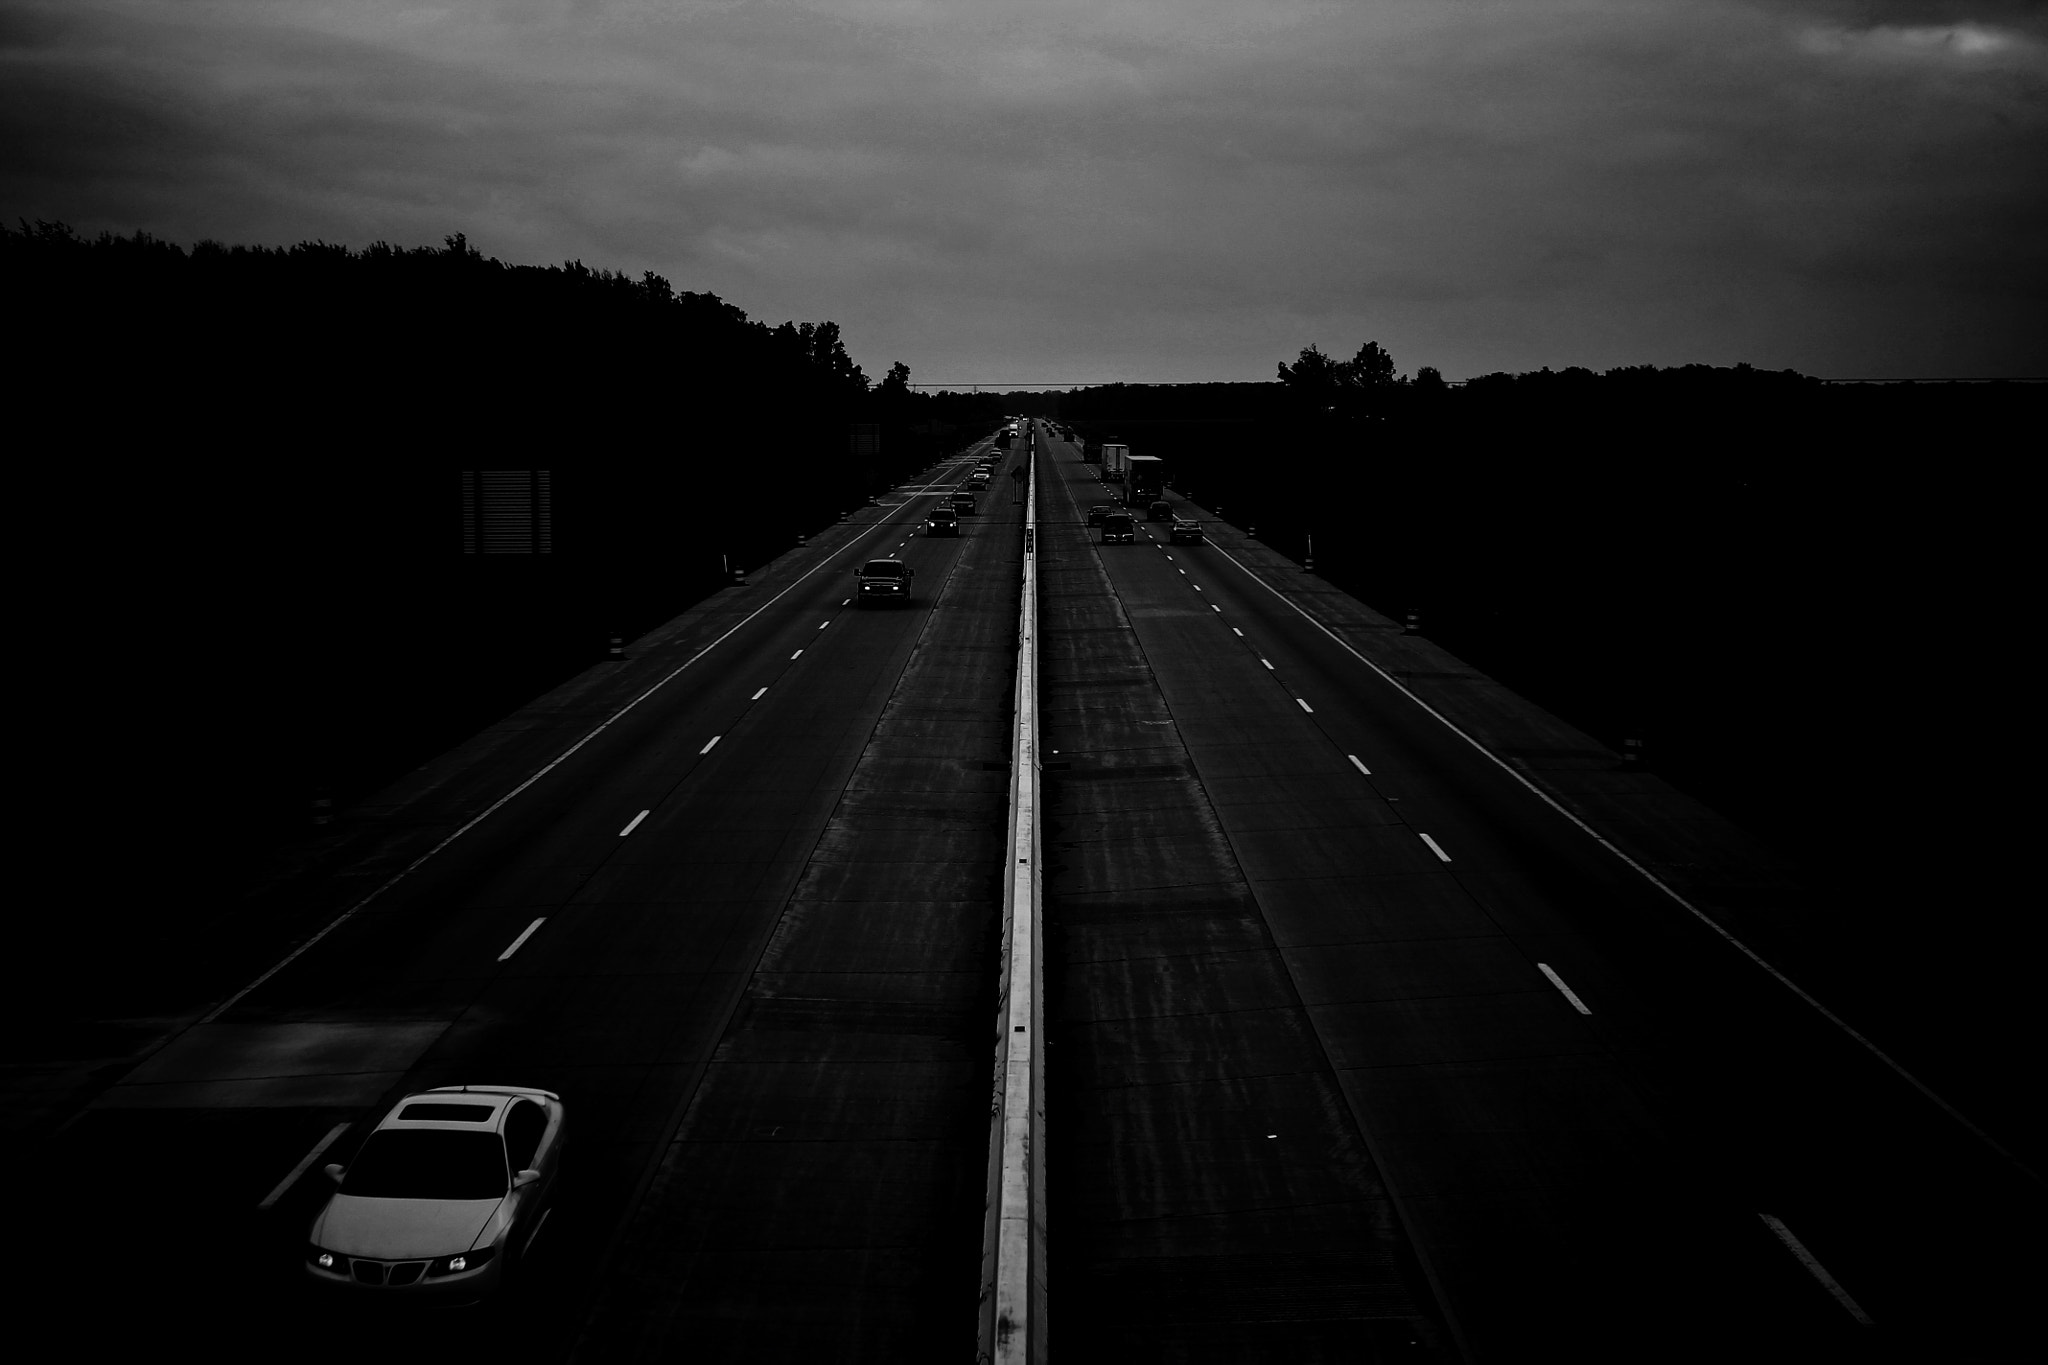 Photograph Coming and Going by Mariah Wyall on 500px